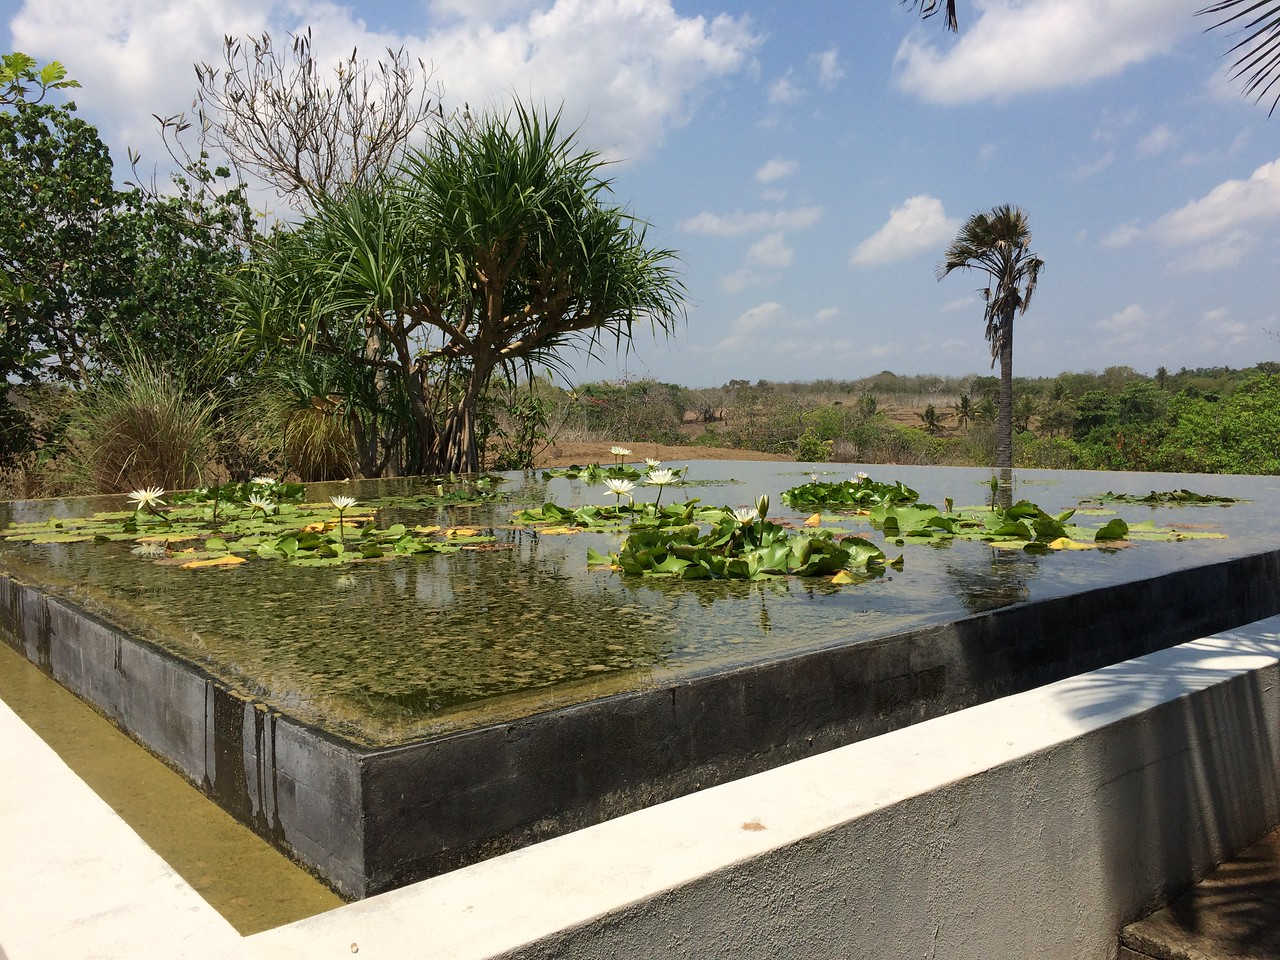 View of rice fields from the lily pool.